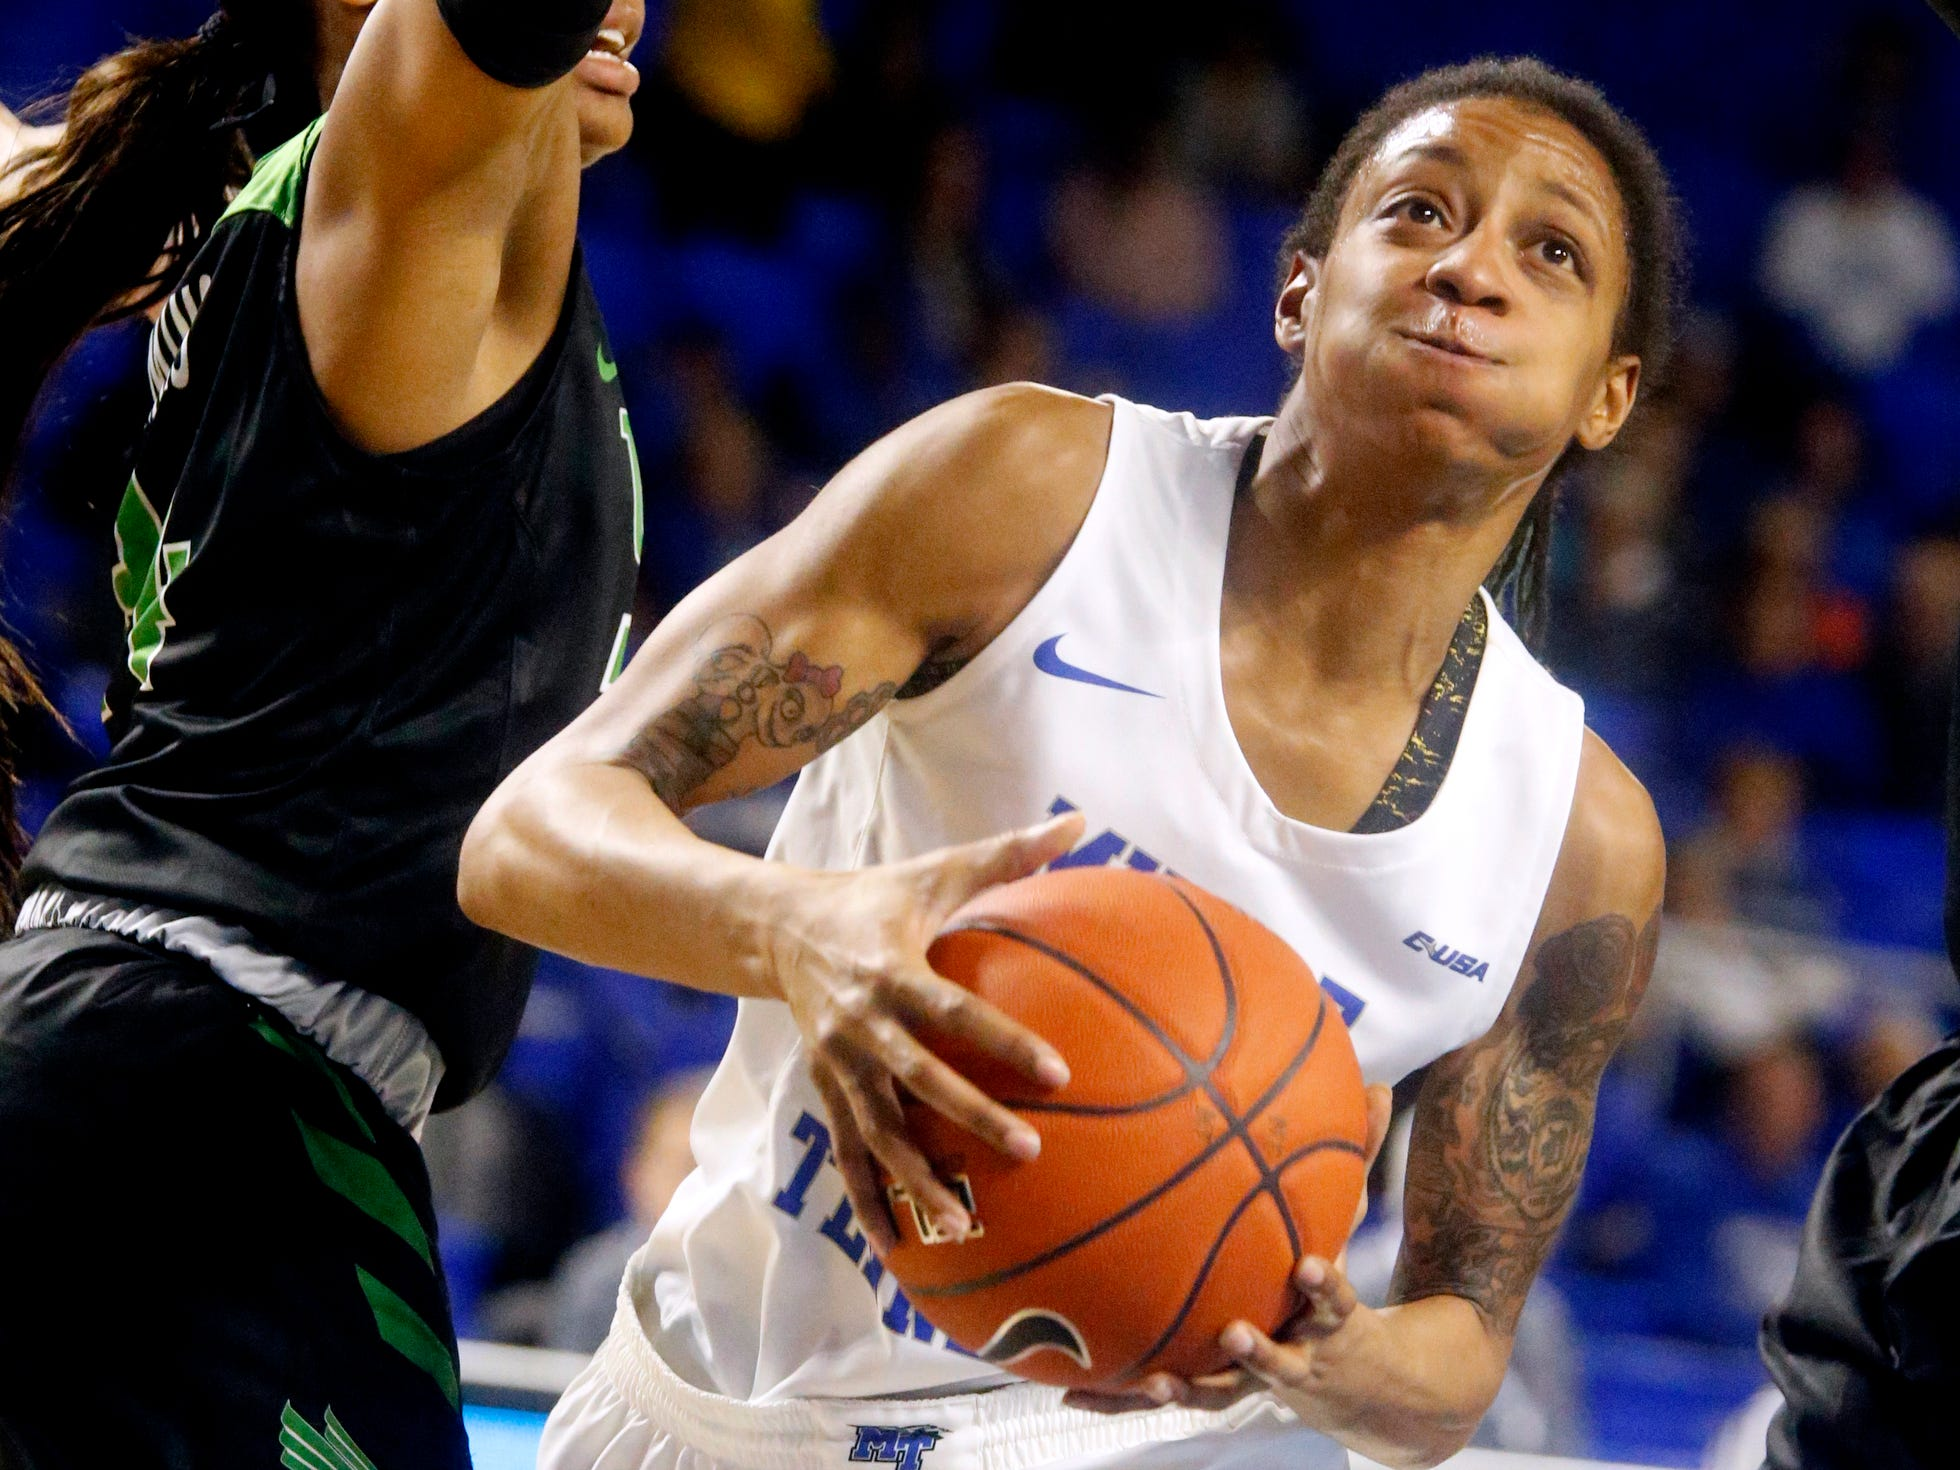 MTSU's guard A'Queen Hayes (1) moves around 